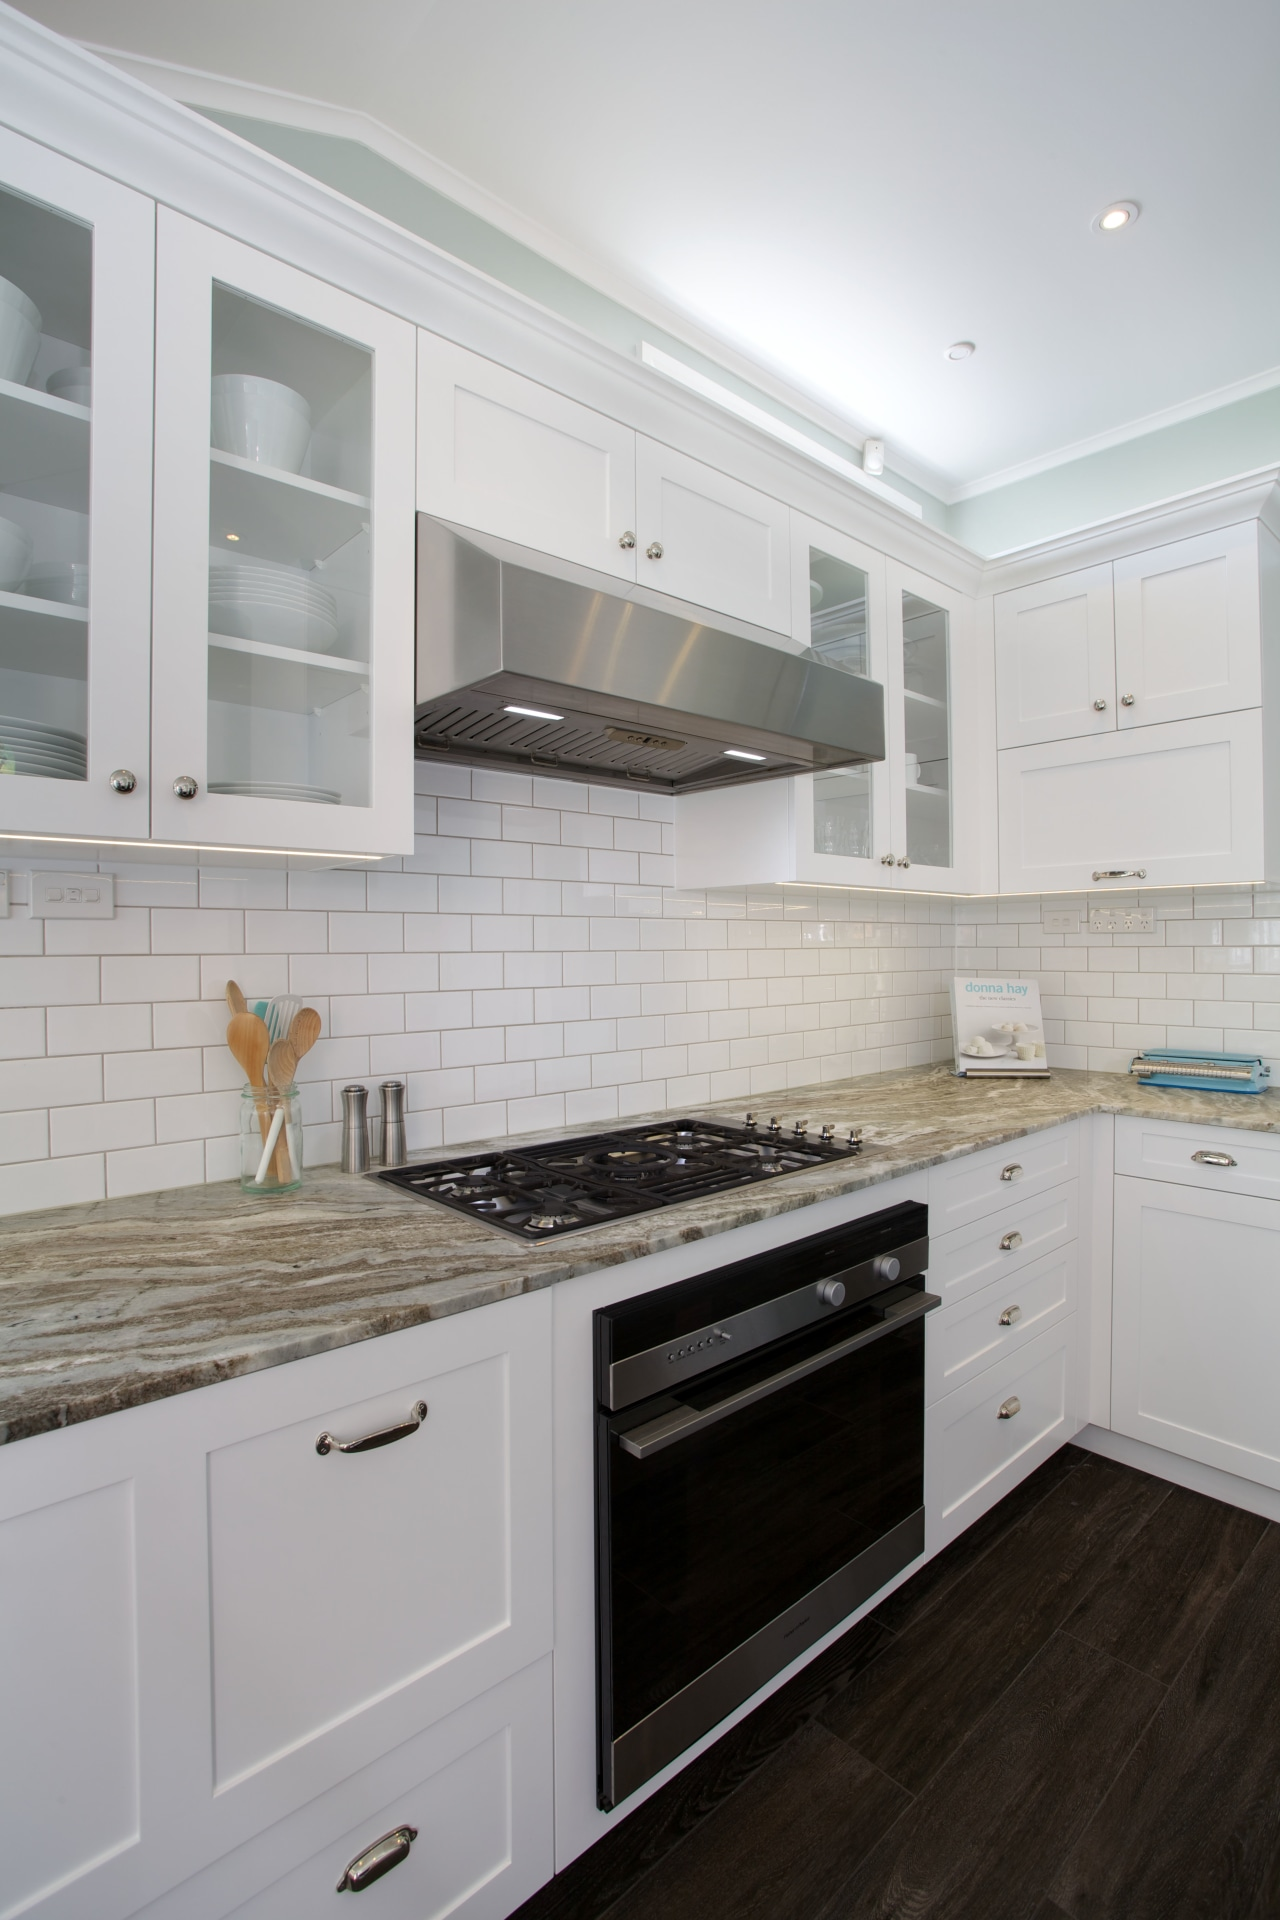 The ventilation unit in this kitchen was custom cabinetry, countertop, cuisine classique, floor, flooring, hardwood, home appliance, interior design, kitchen, kitchen appliance, kitchen stove, major appliance, room, tile, wood flooring, gray